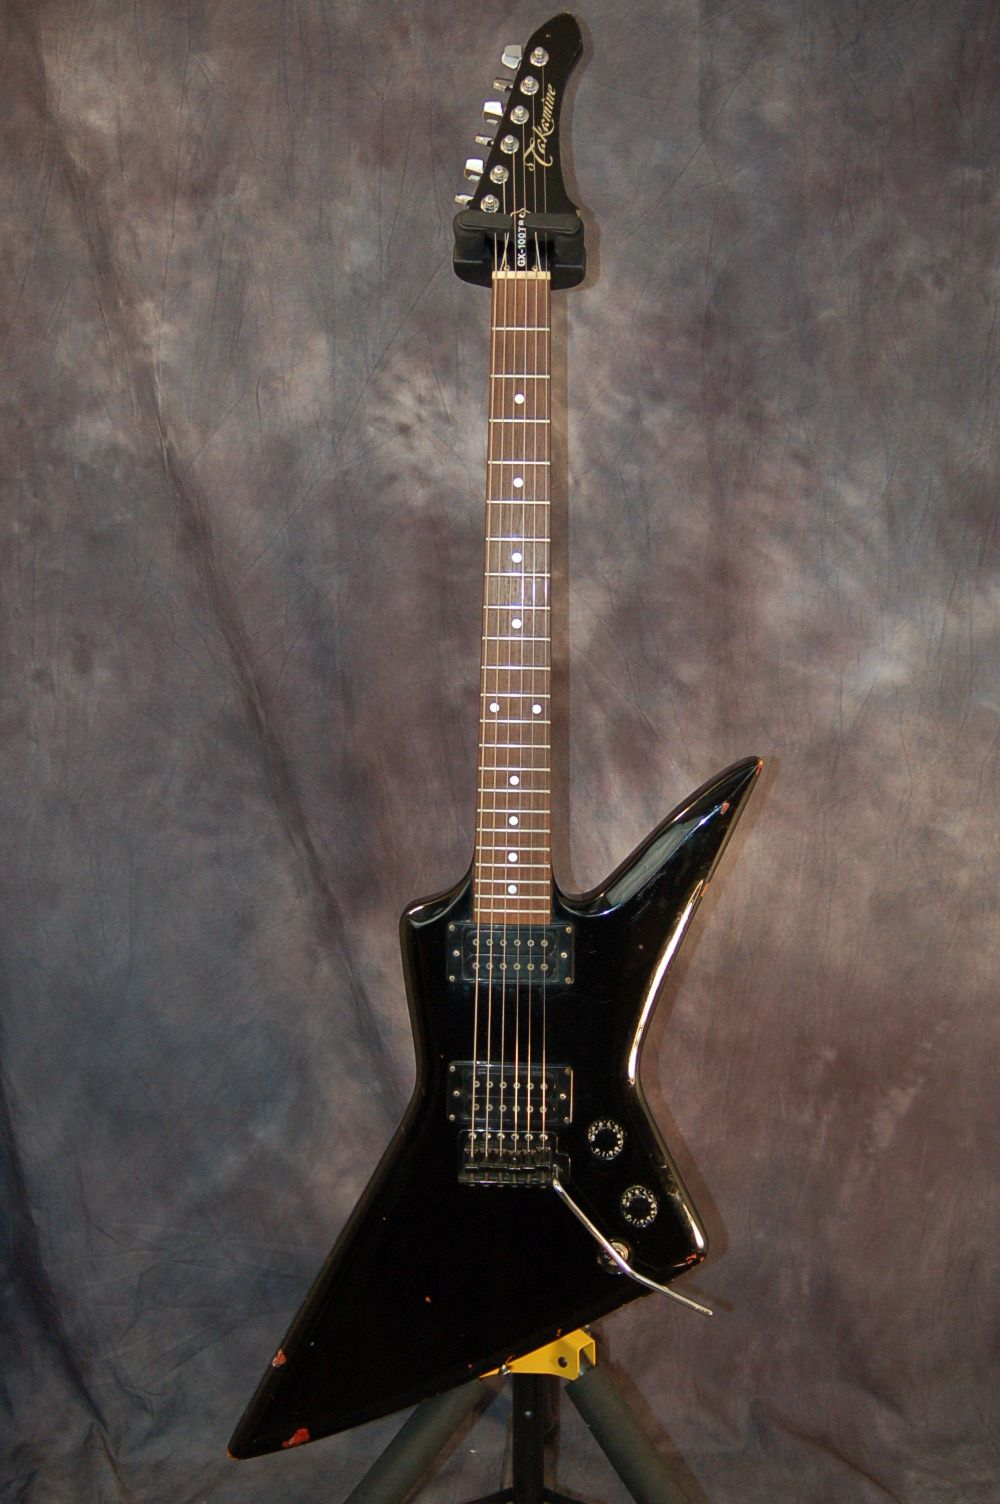 1984 takamine explorer guitar for sale in my ebay store give me a call 515 864 6136 ebay. Black Bedroom Furniture Sets. Home Design Ideas